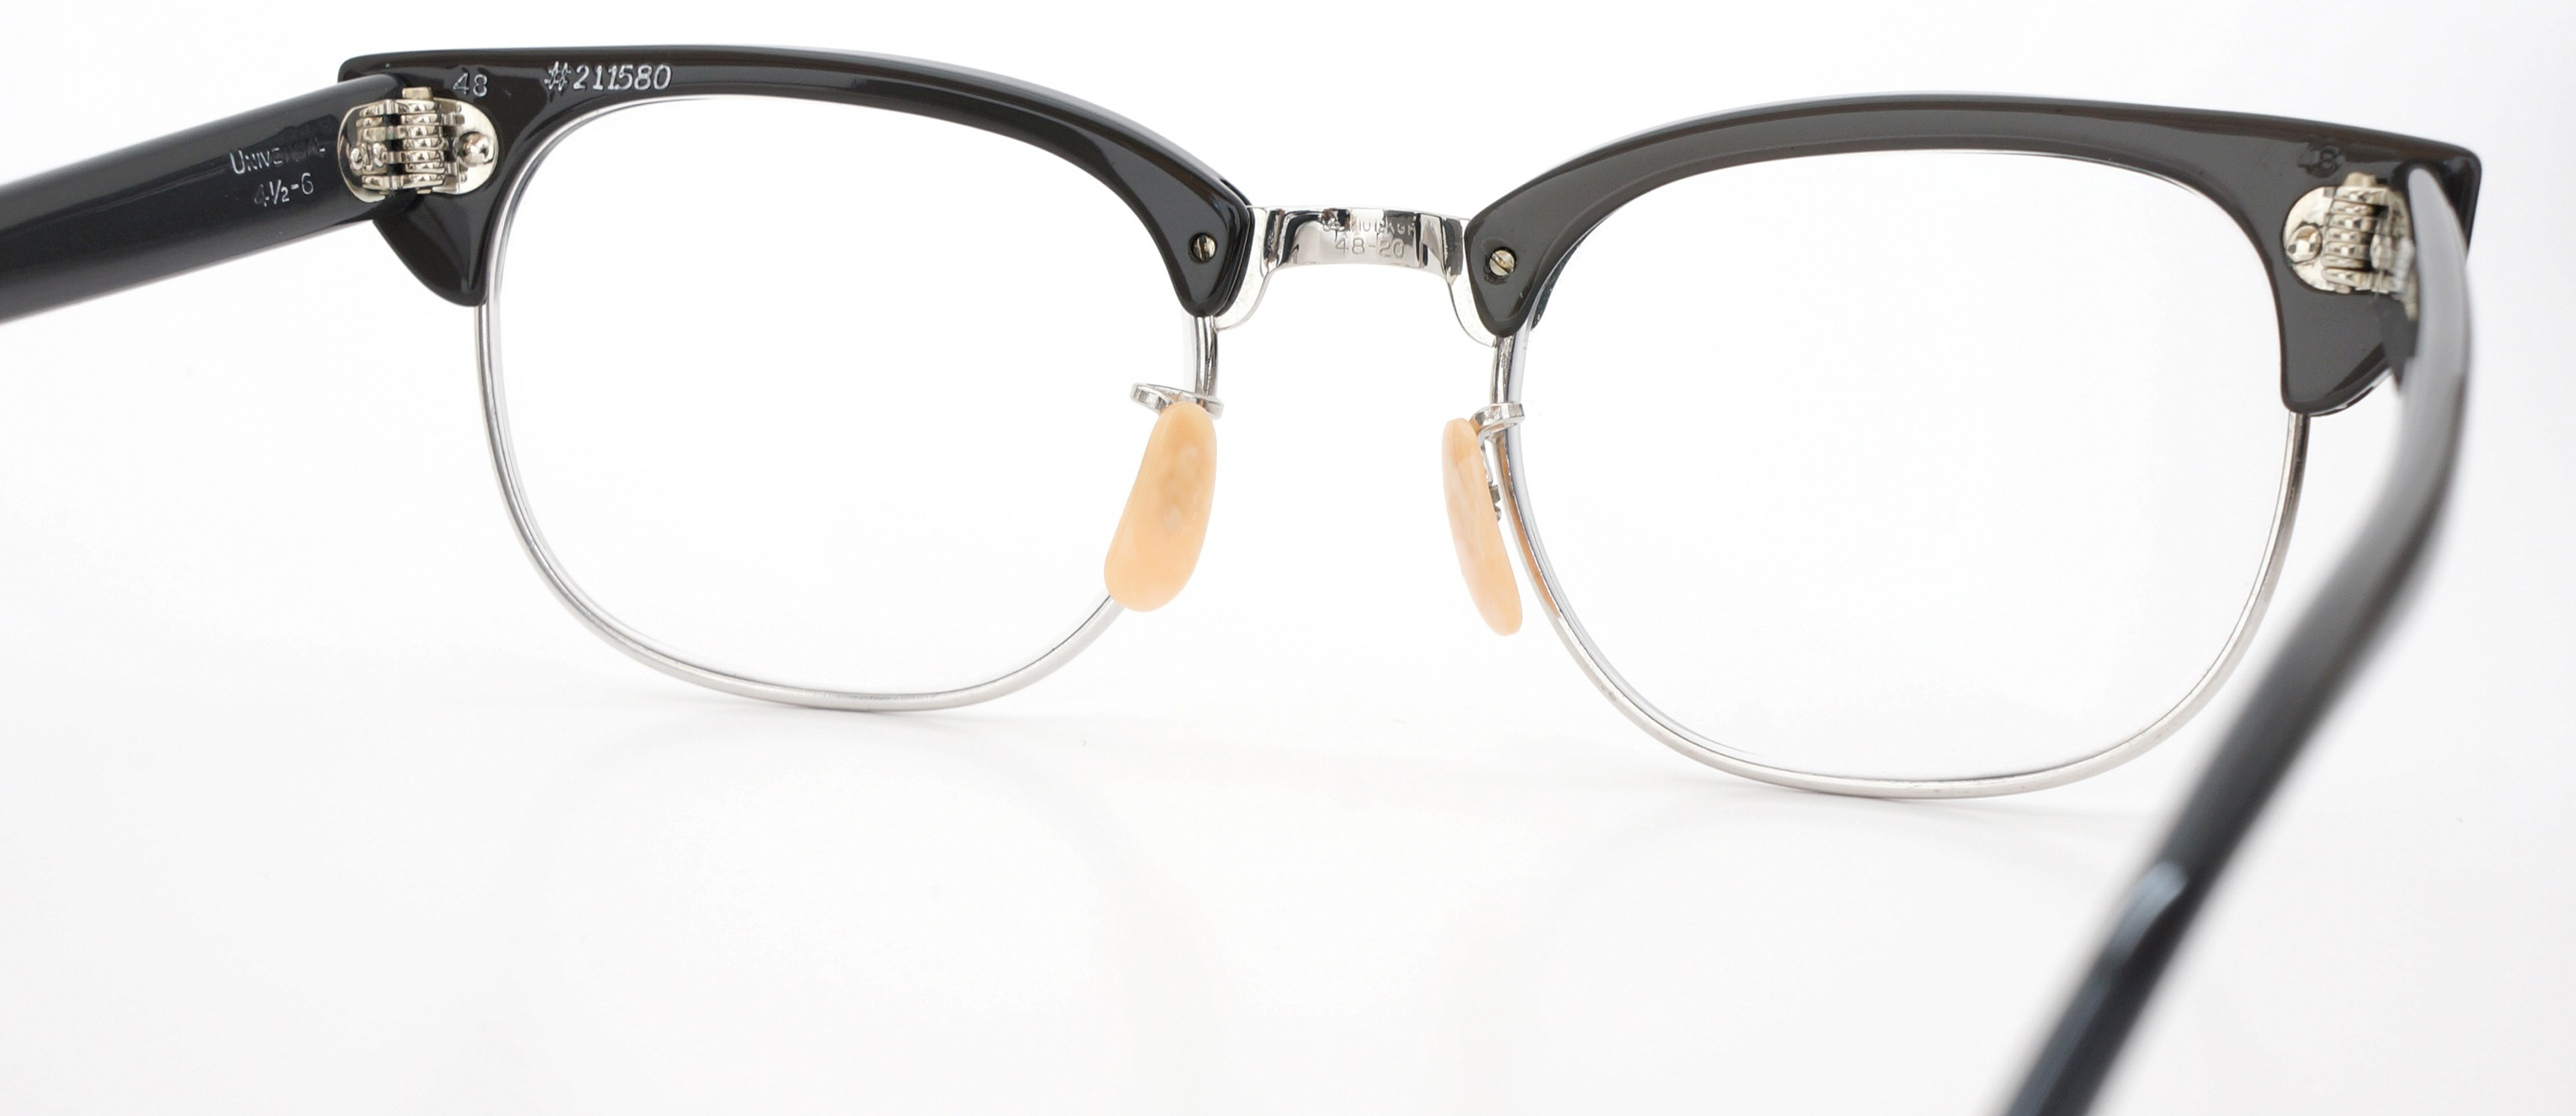 The Spectacle メガネ 1950s-60s Universal Combination UOC-600E Grey-Stripe WG 48-20 イメージ8